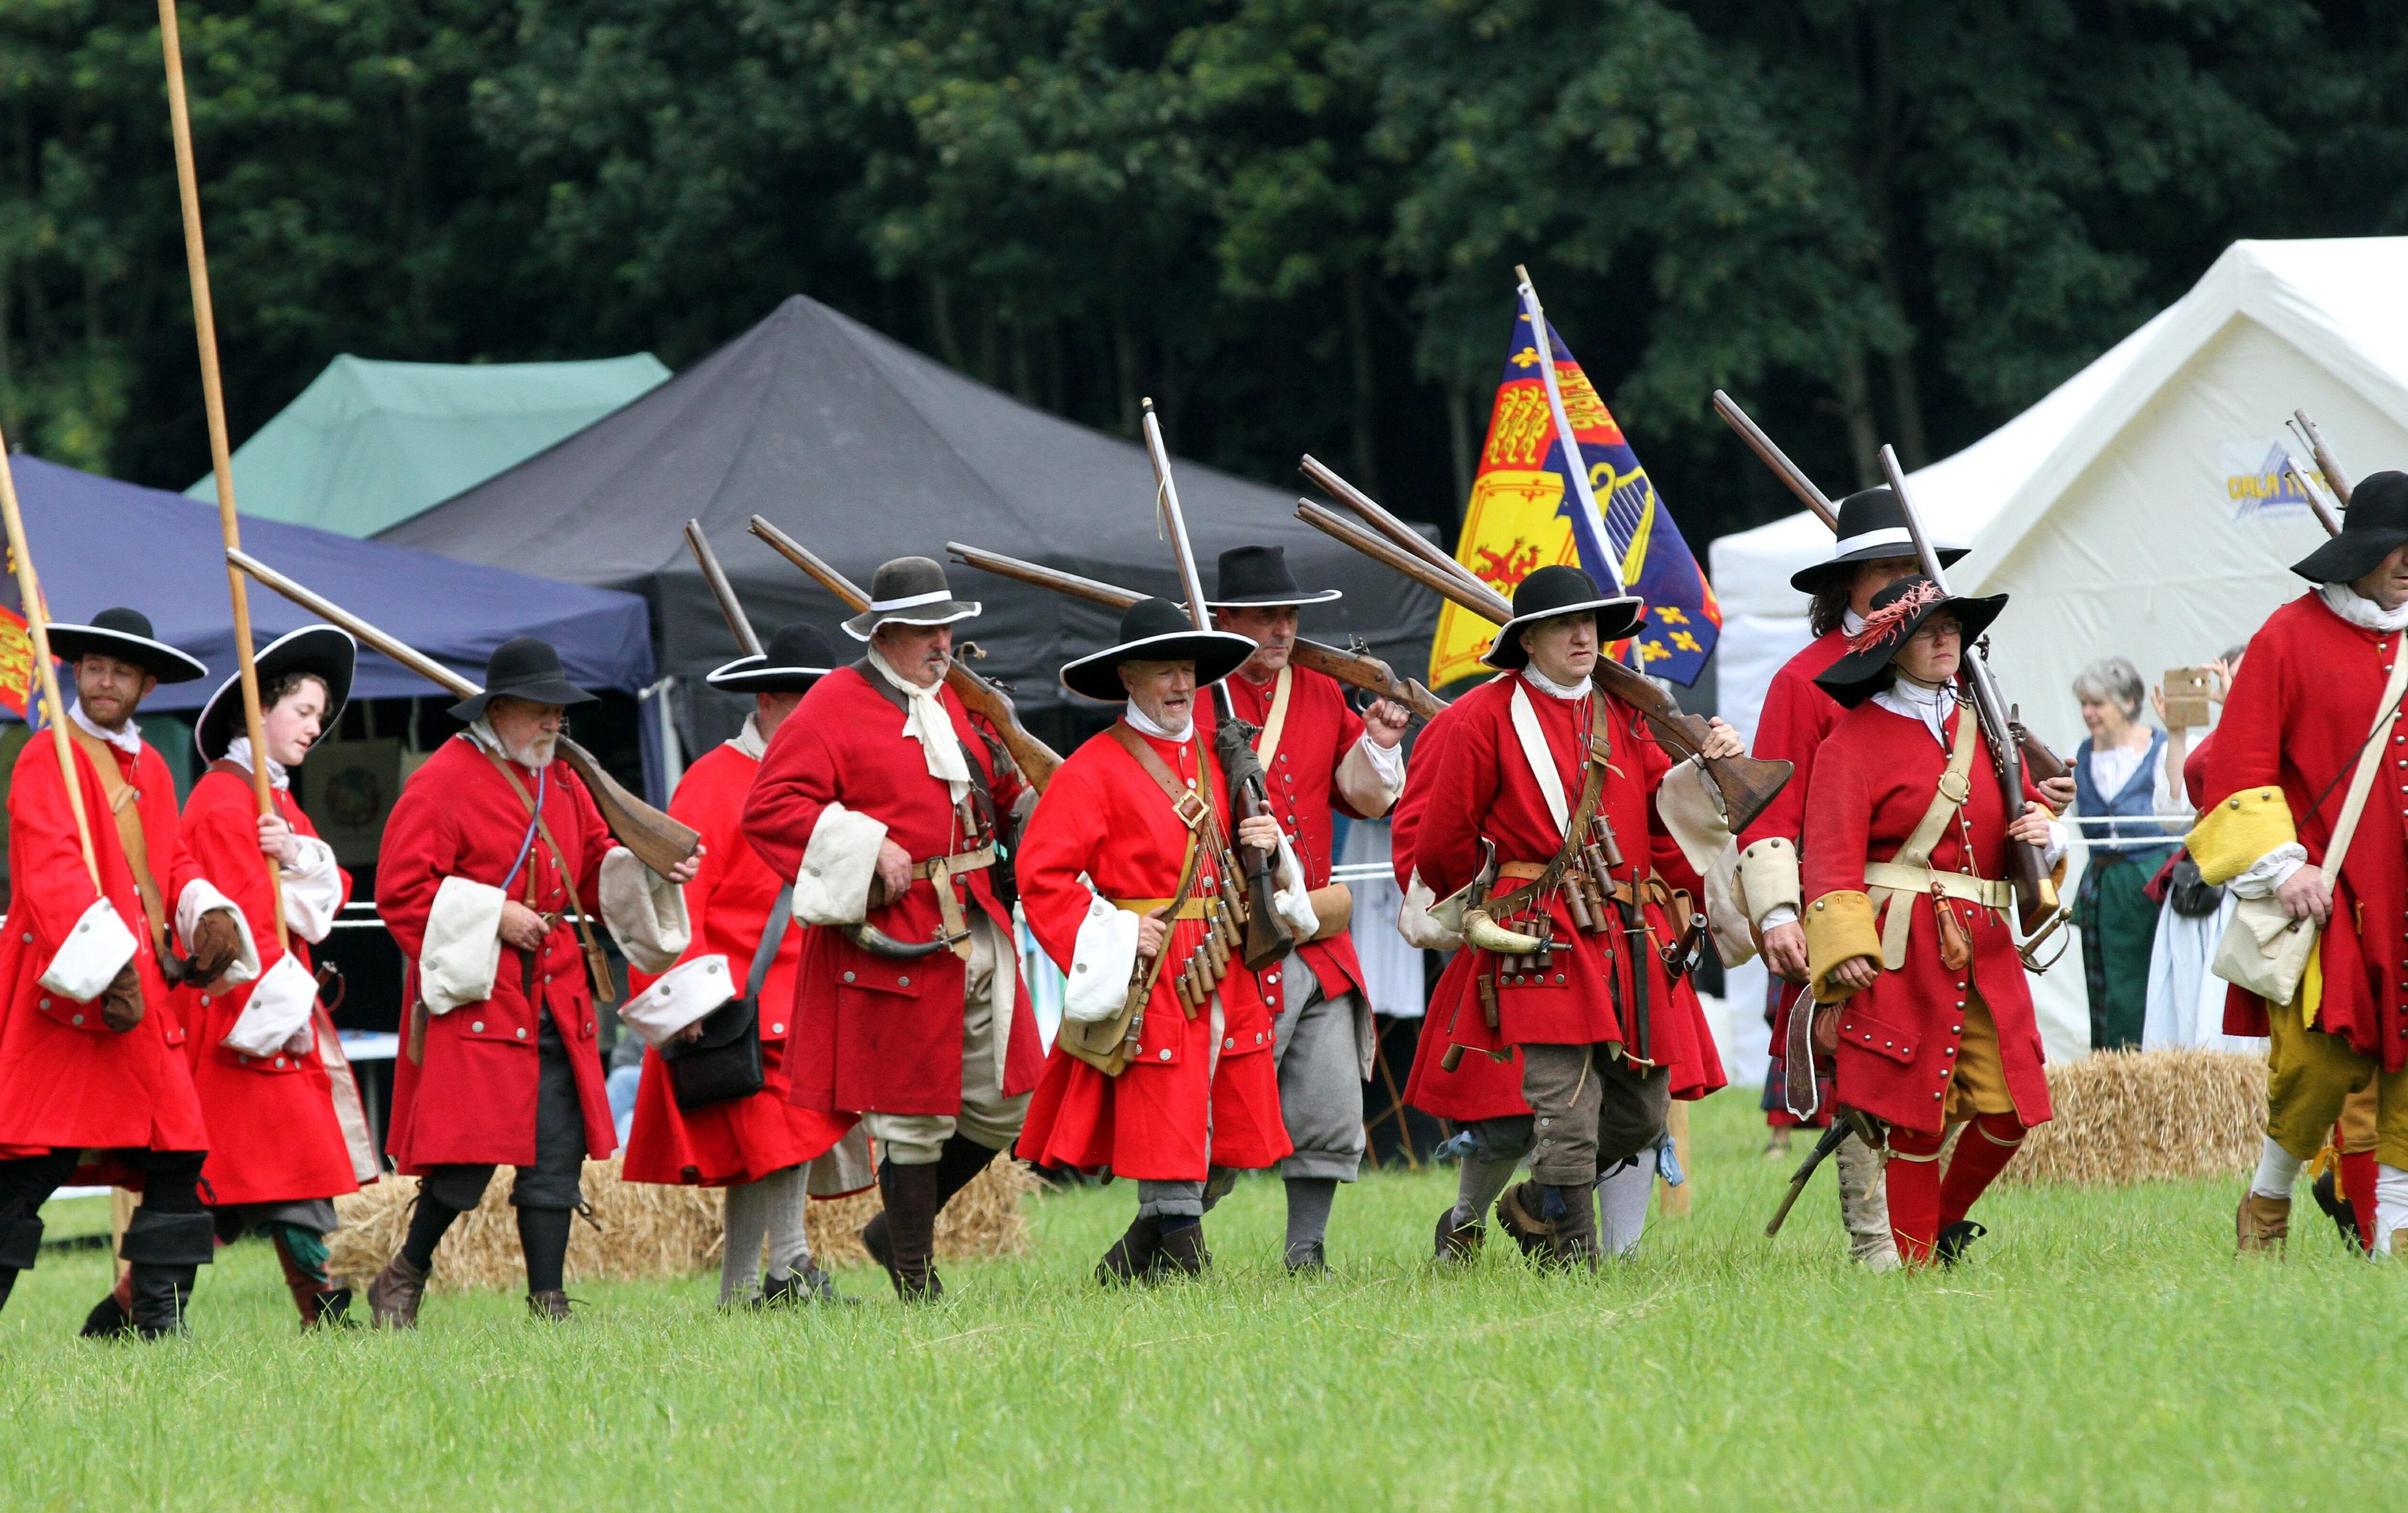 A re-enactment of the battle by the Soldiers of Killiecrankie group.